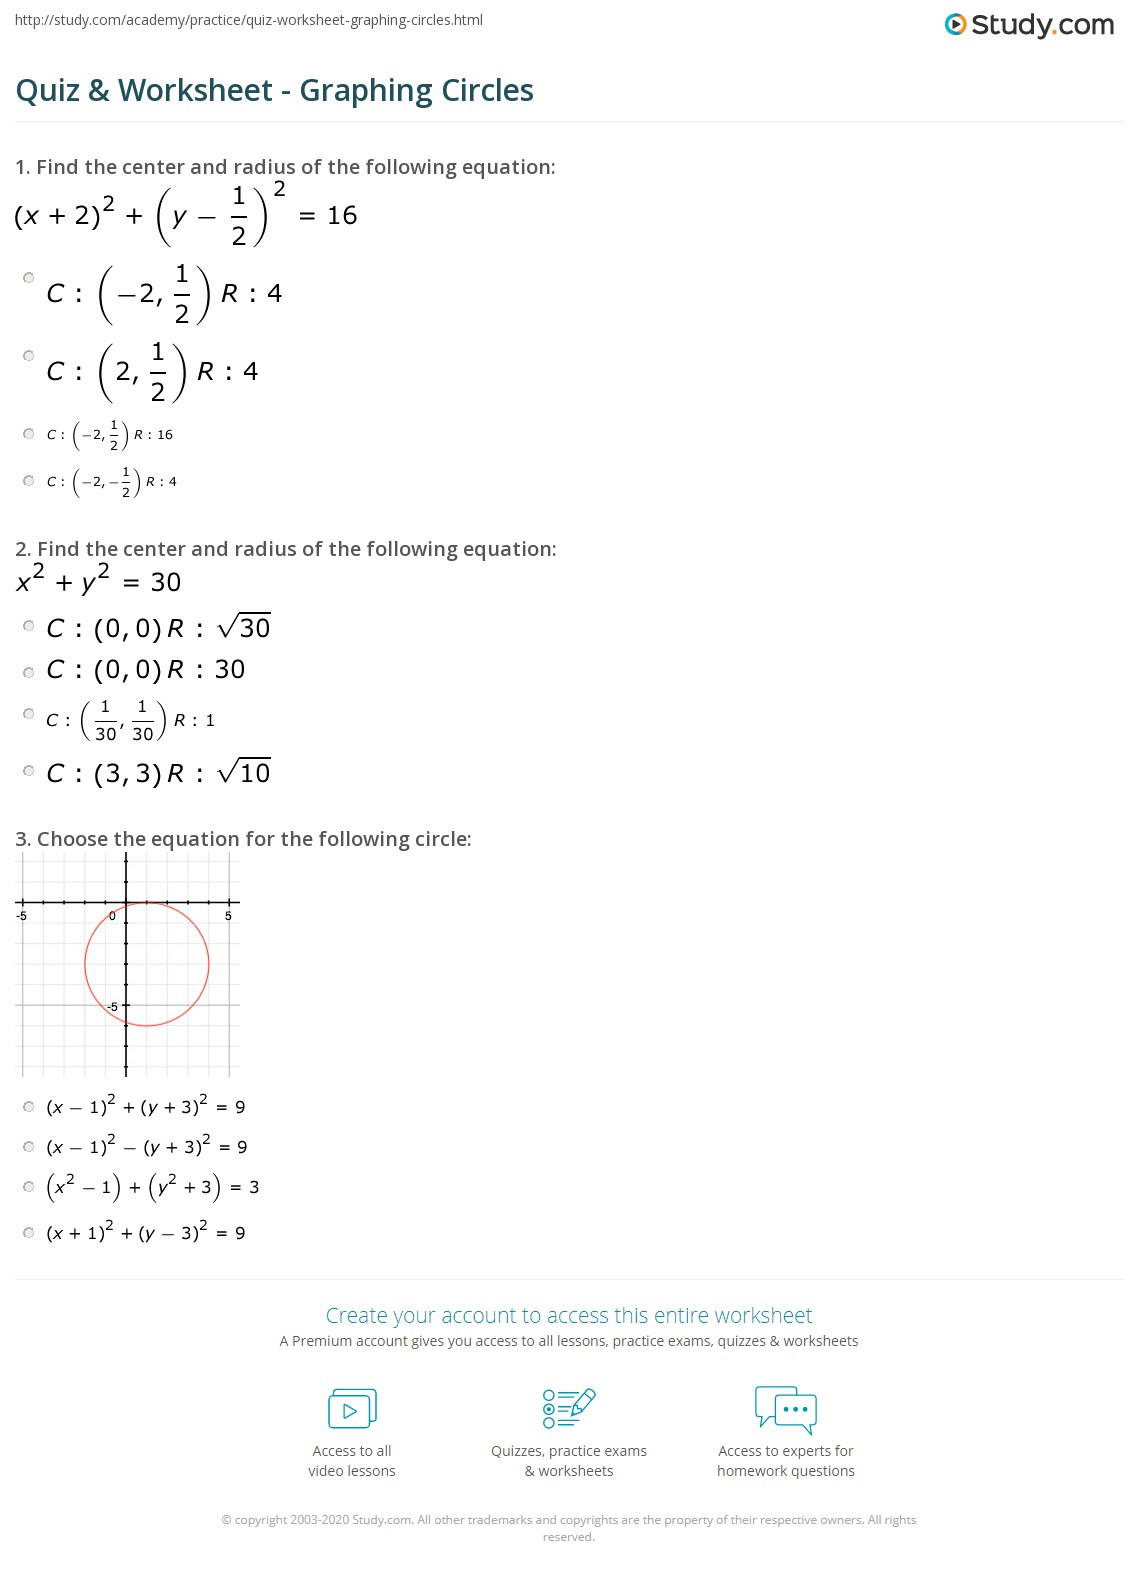 worksheet Graphing Circles Worksheet quiz worksheet graphing circles study com print identifying the formula center and radius worksheet